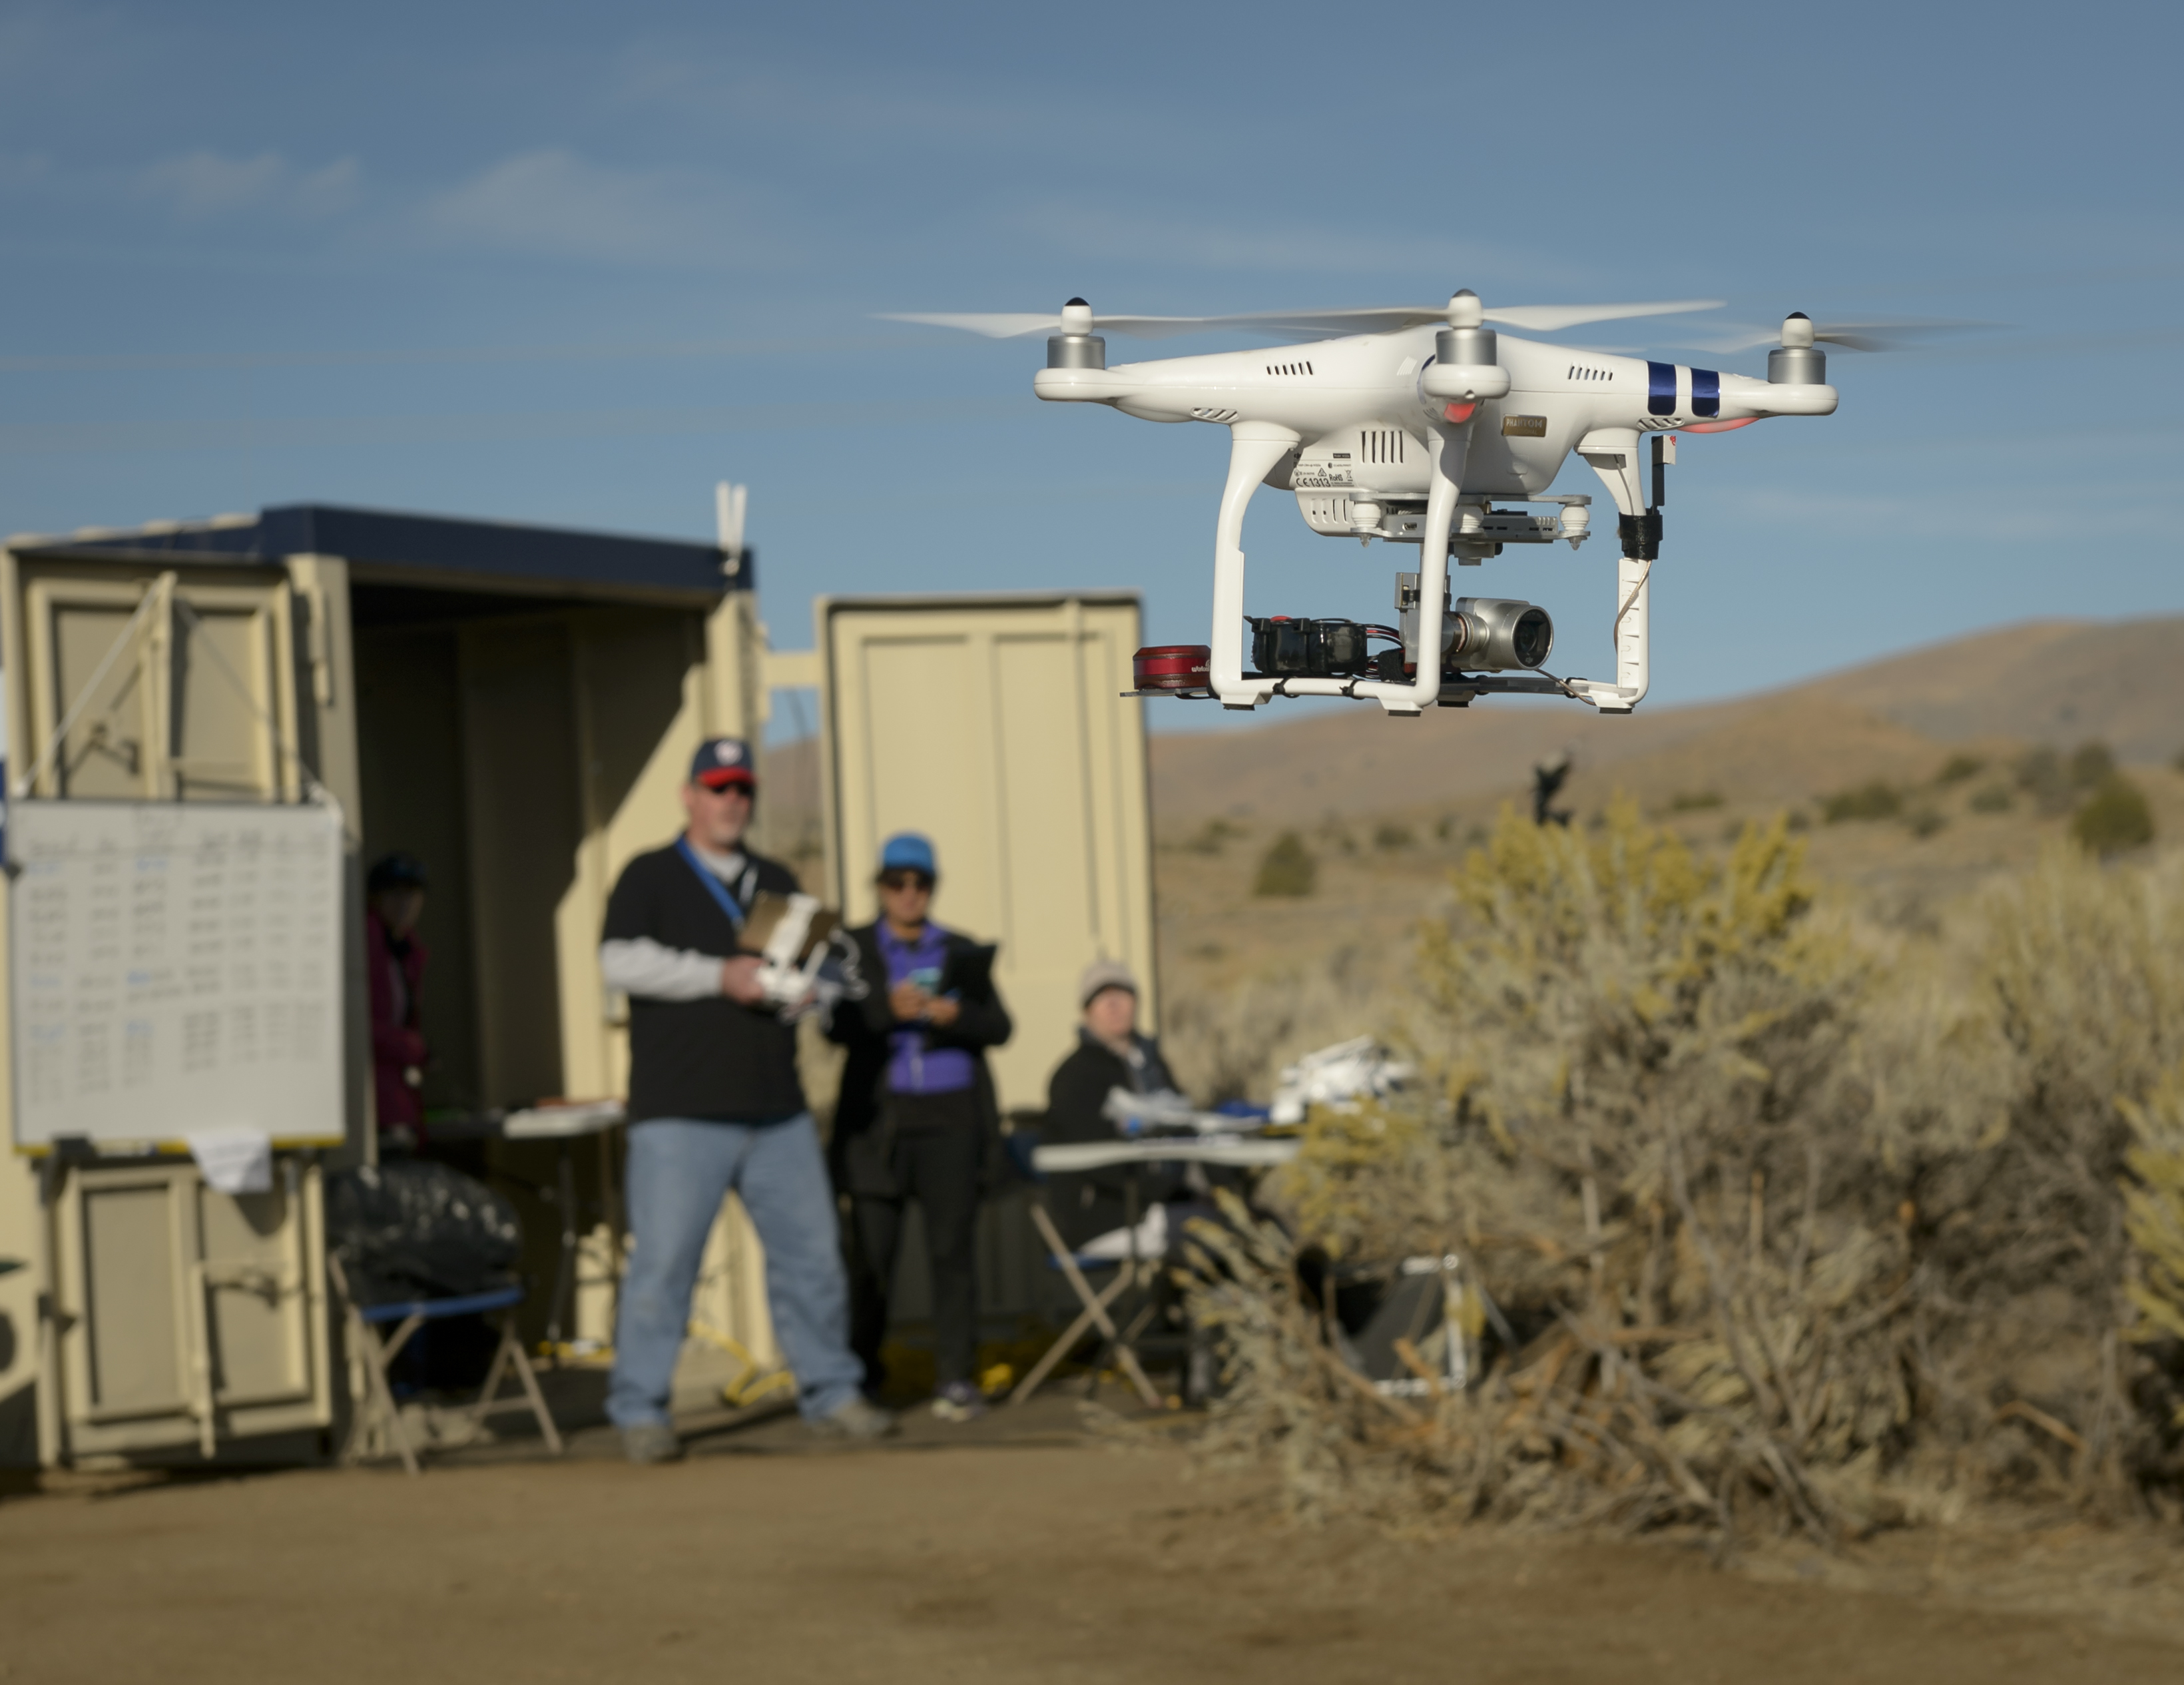 FREQUENTIS' location information supports NASA UAS test in Nevada